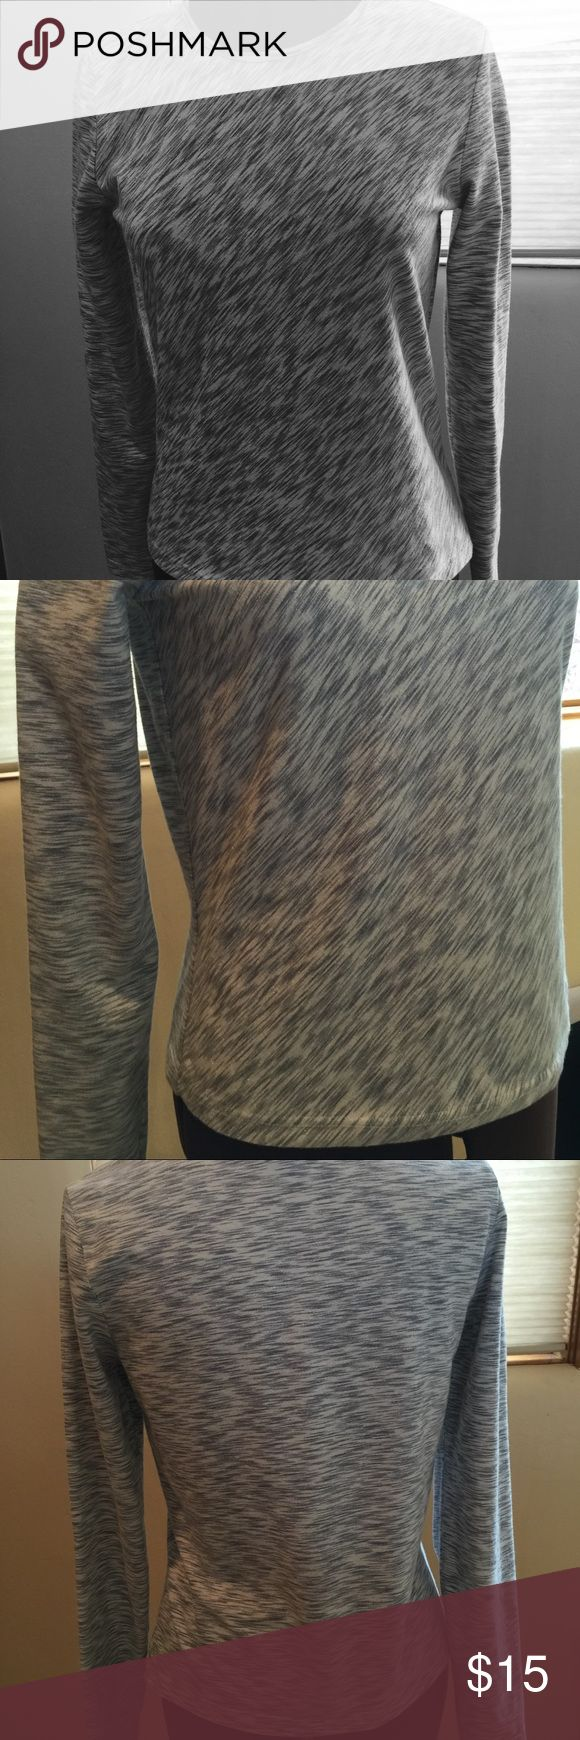 GAP Stretch Long Sleeve Shirt Silver and white with some shimmer, this long sleeve stretch shirt from GAP is the perfect 'pair with anything' top. 8% spandex for perfect shape and hold. Size Medium. GAP Tops Tees - Long Sleeve